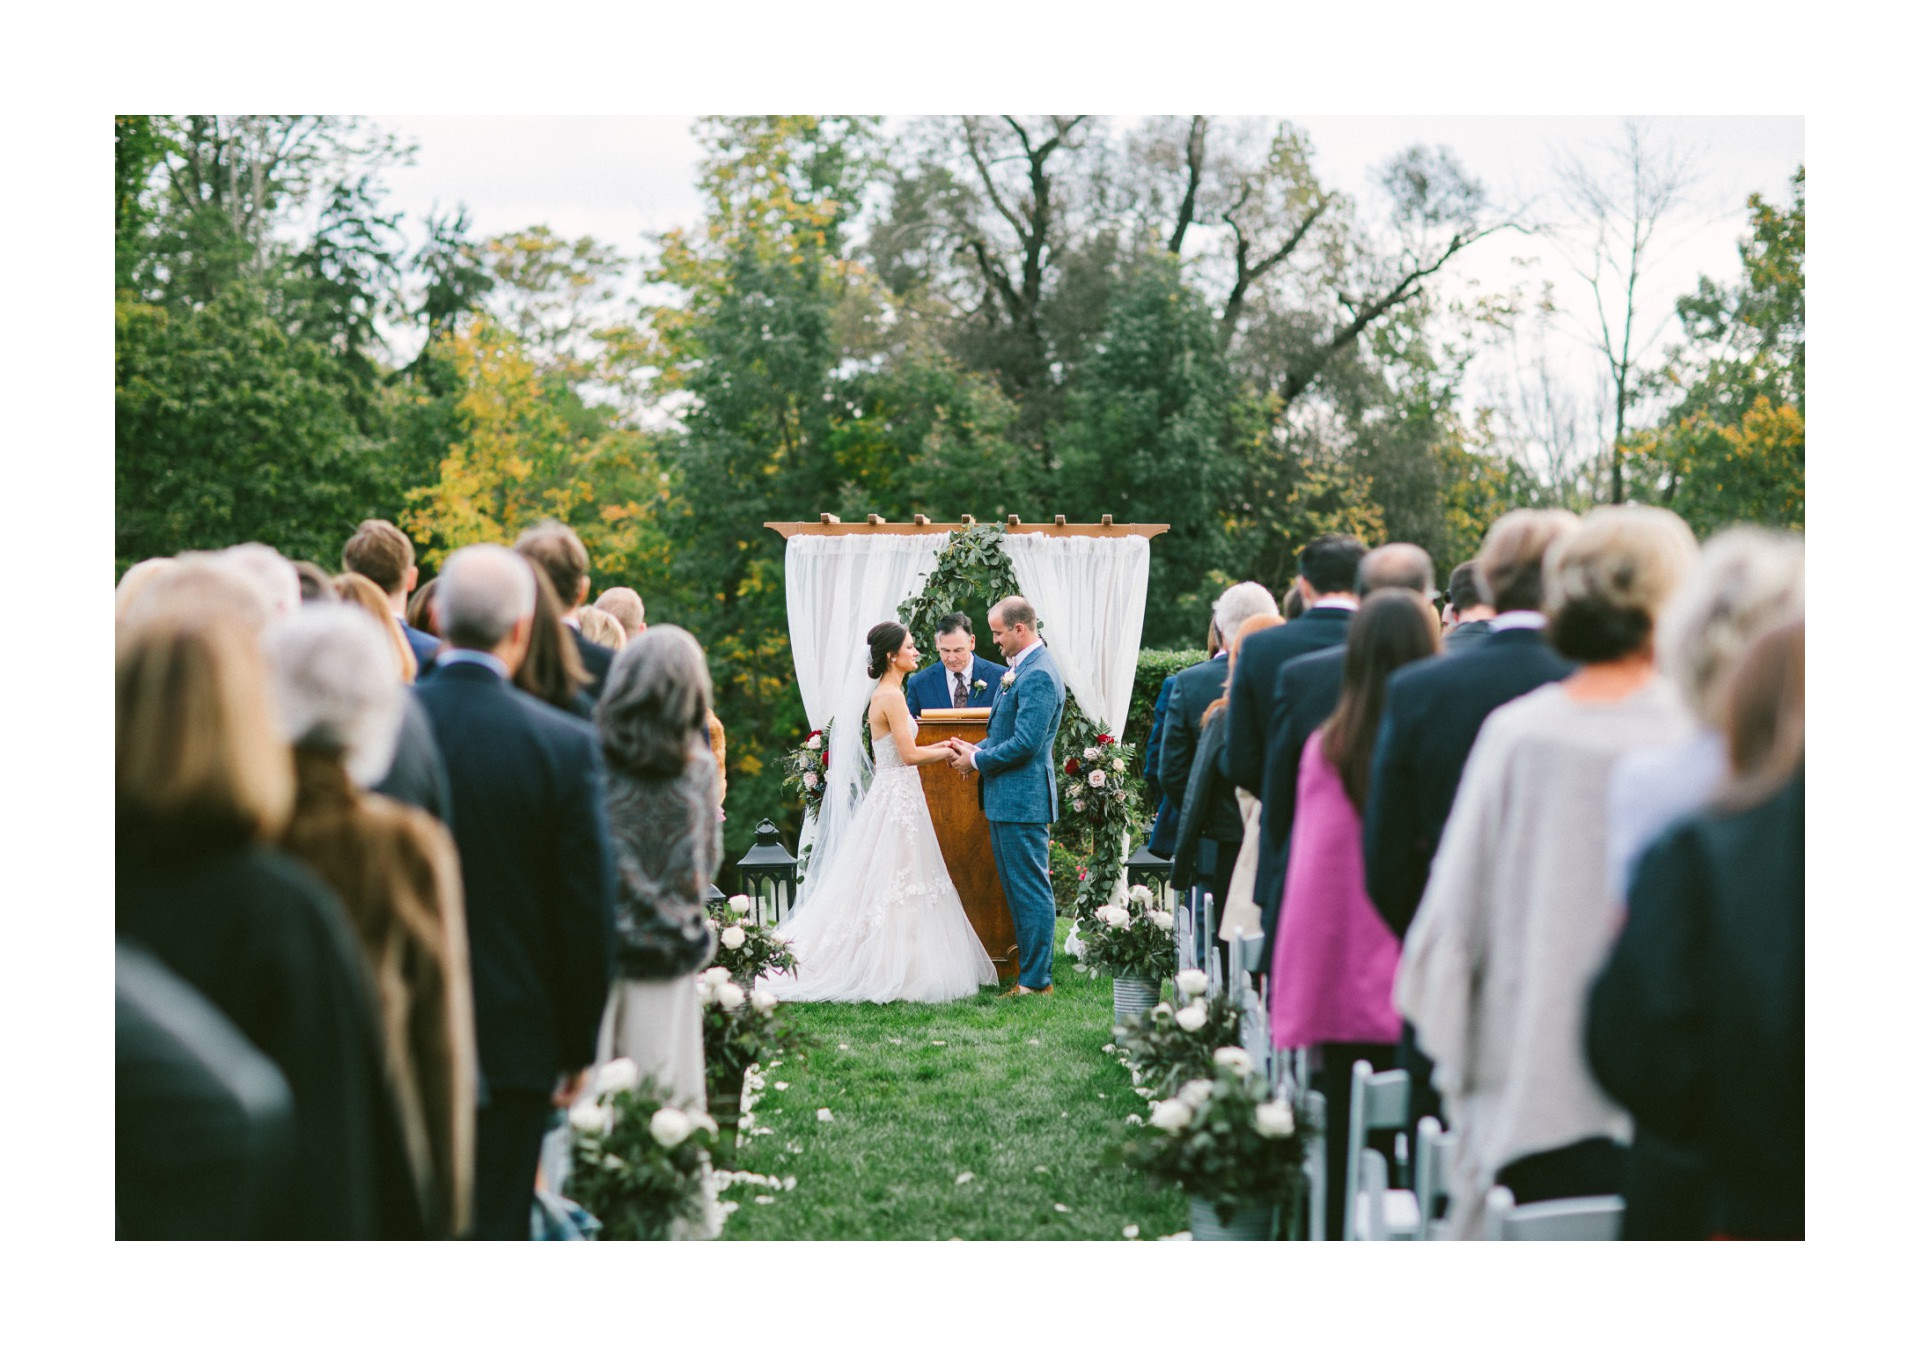 Wedding at Kirtland Country Club in Willoughby 3 2.jpg